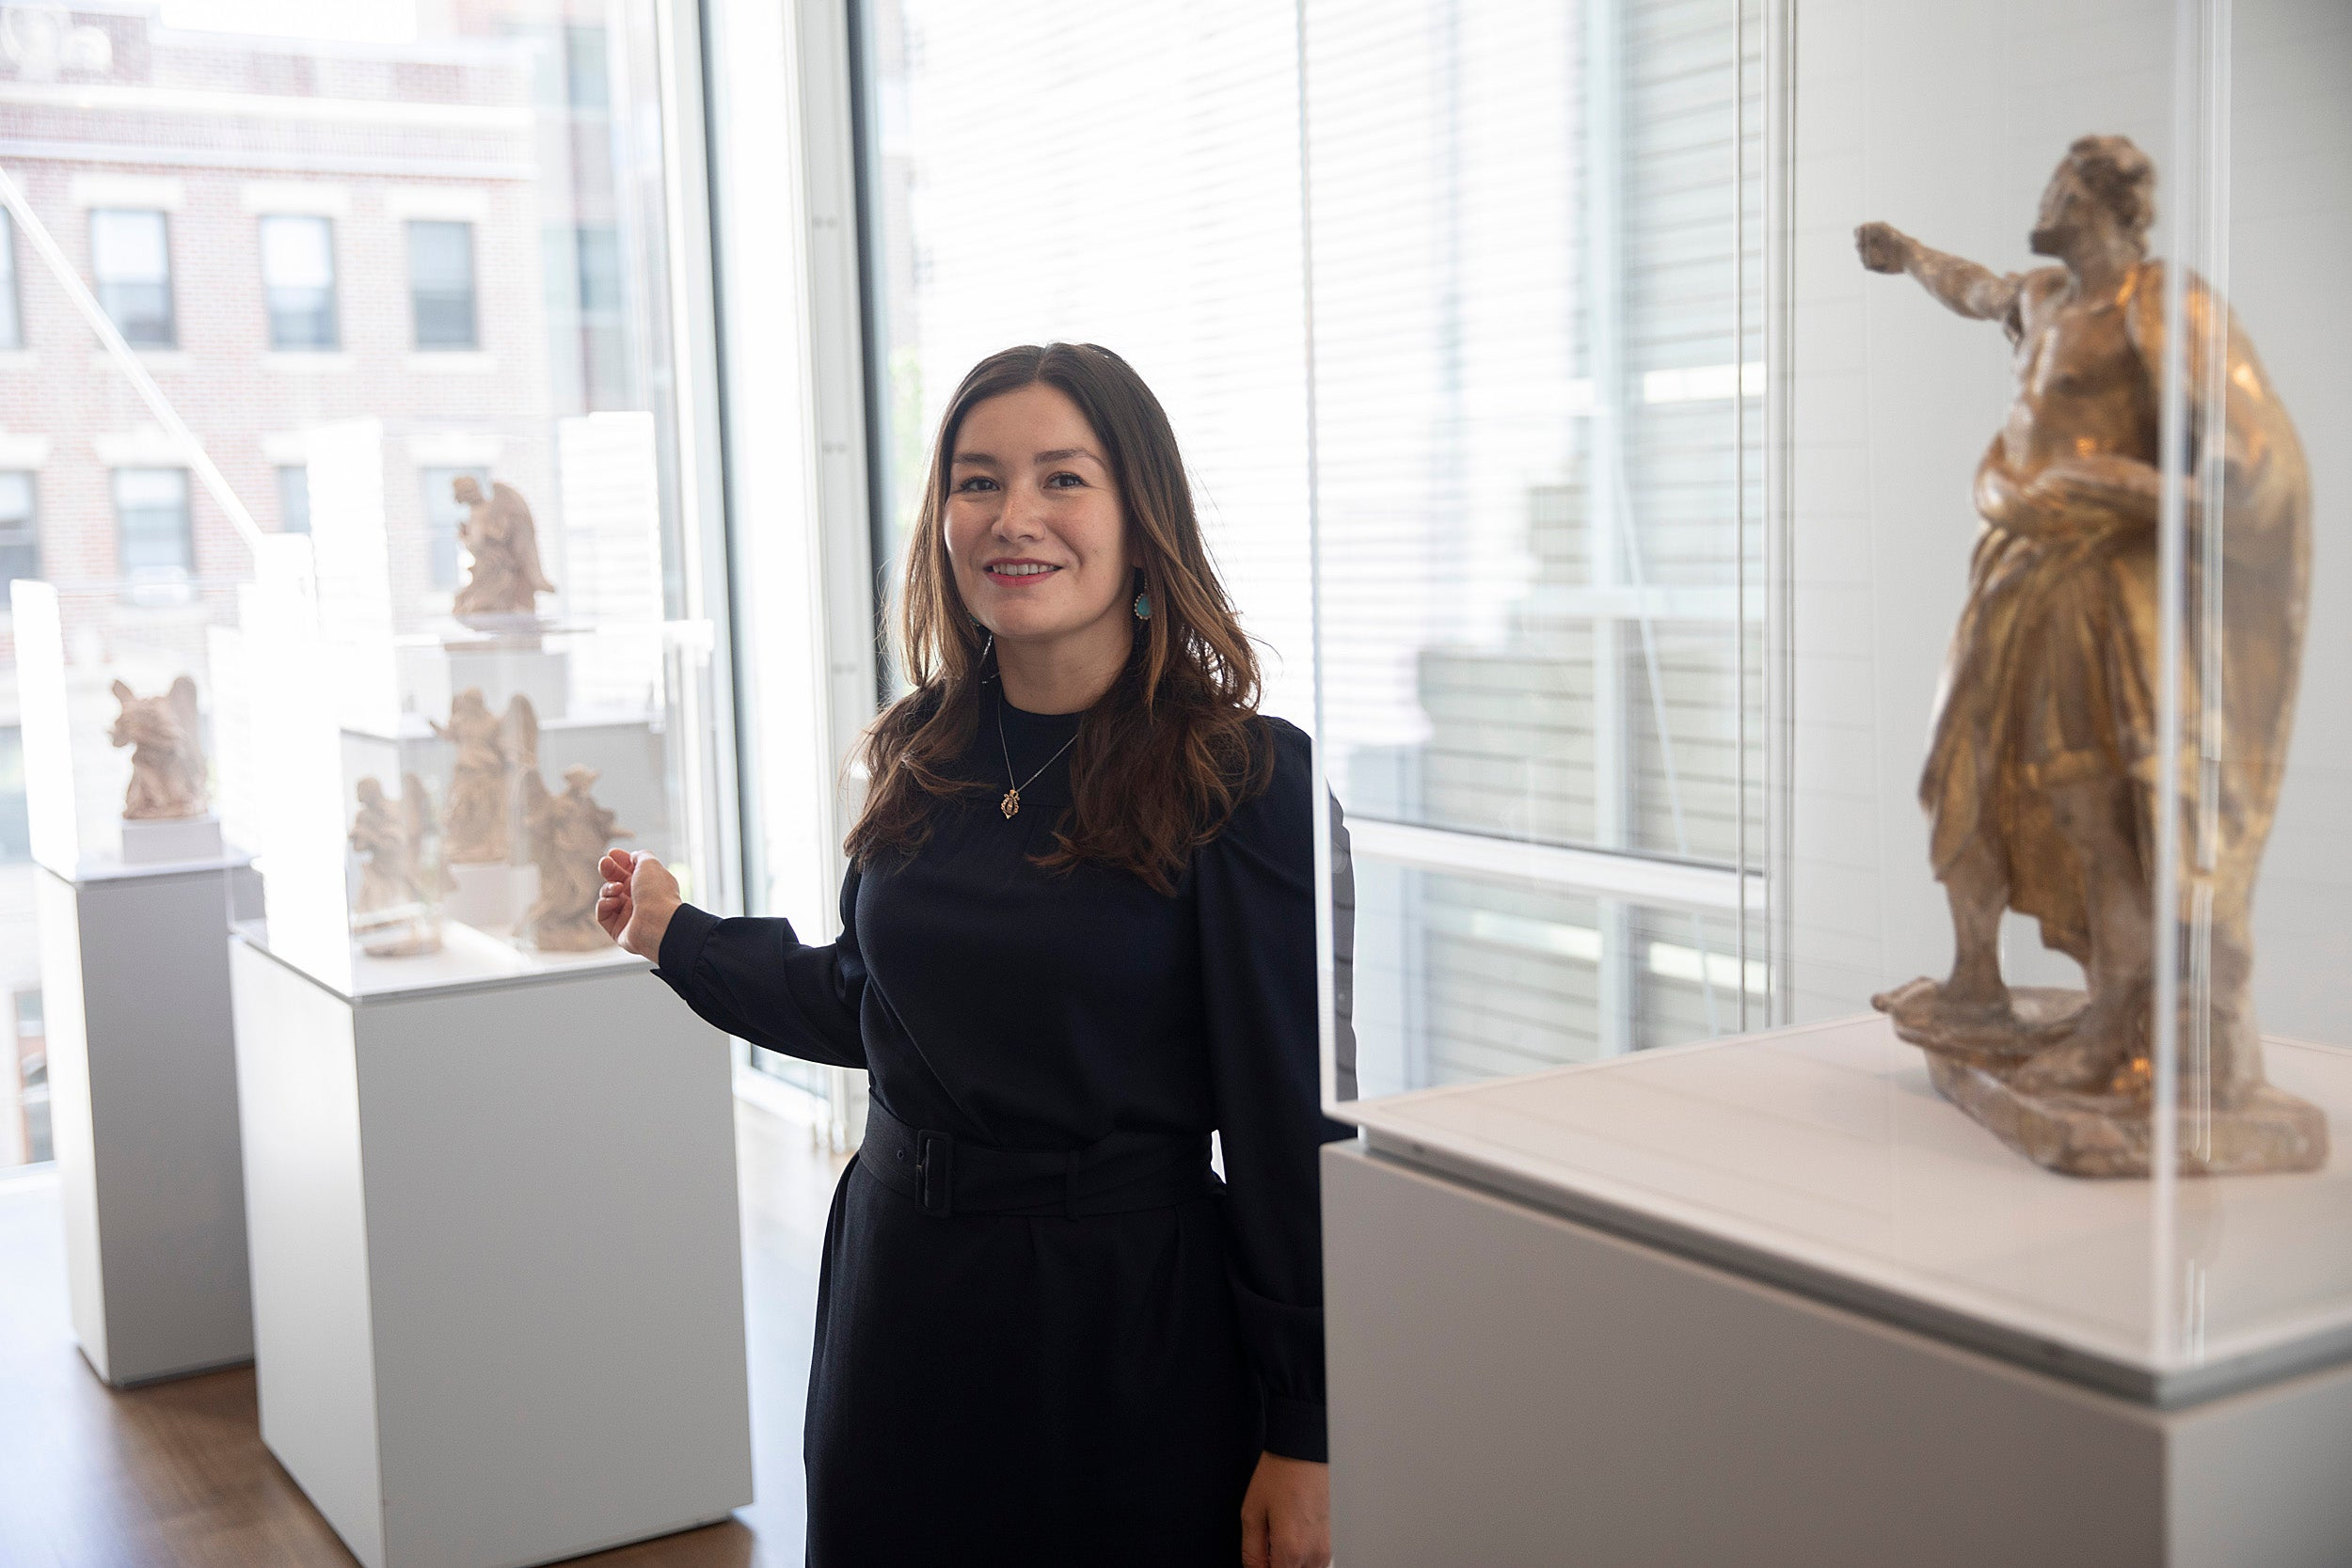 New History of Art and Architecture professor Shawon Kinew gave a lecture last month on Gian Lorenzo Bernini's sculpture of Saint Longinus, c. 1630-1631.